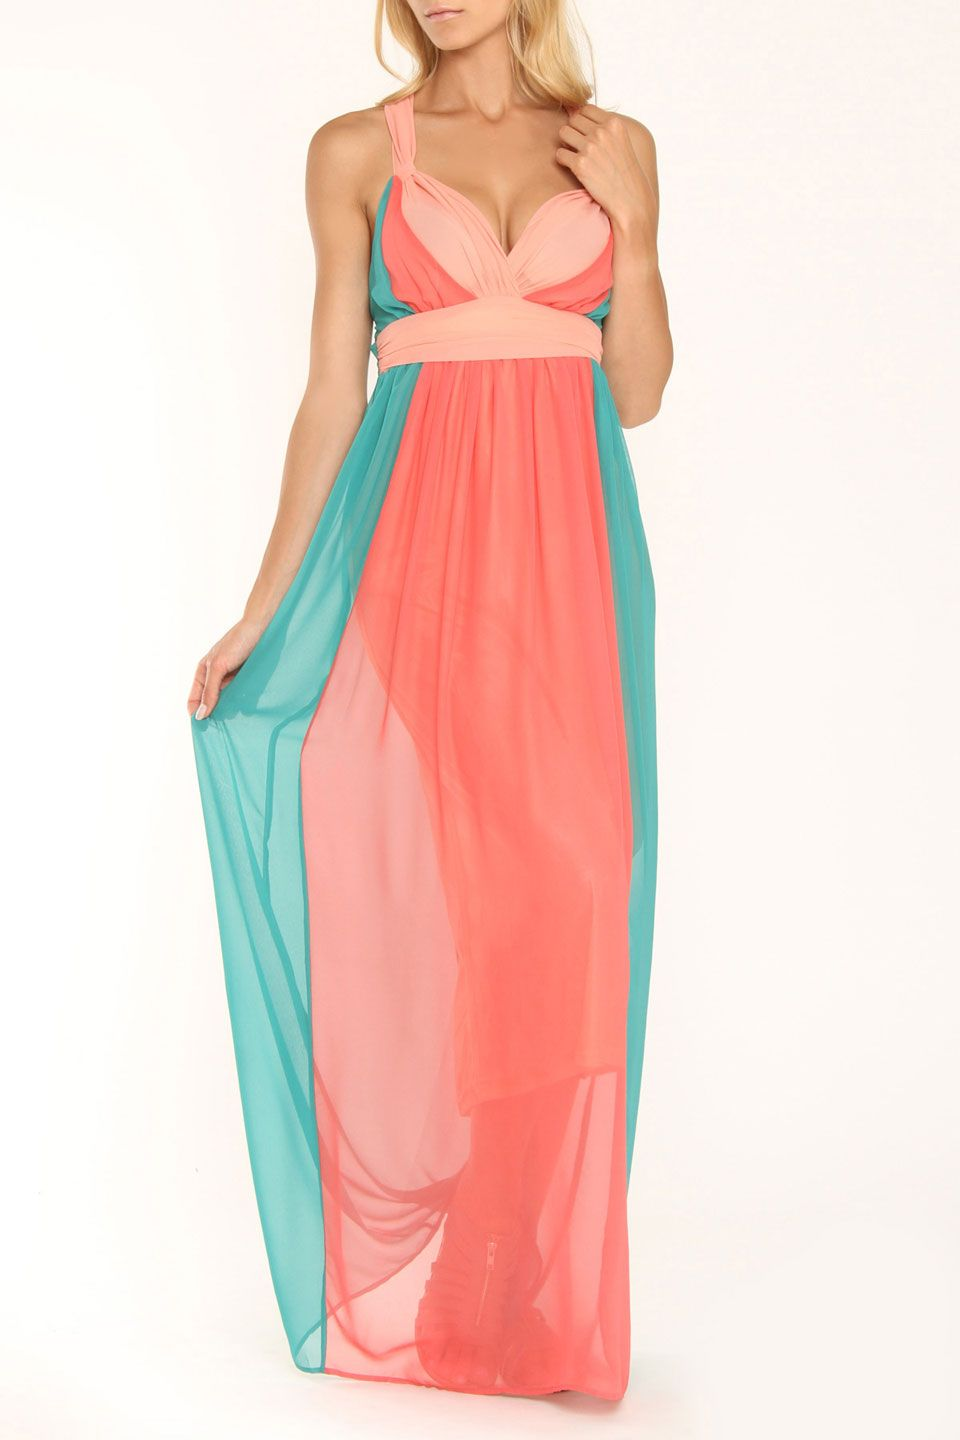 Andree Courtney Maxi Dress In Teal Orange Beyond The Rack Cuuutteeee